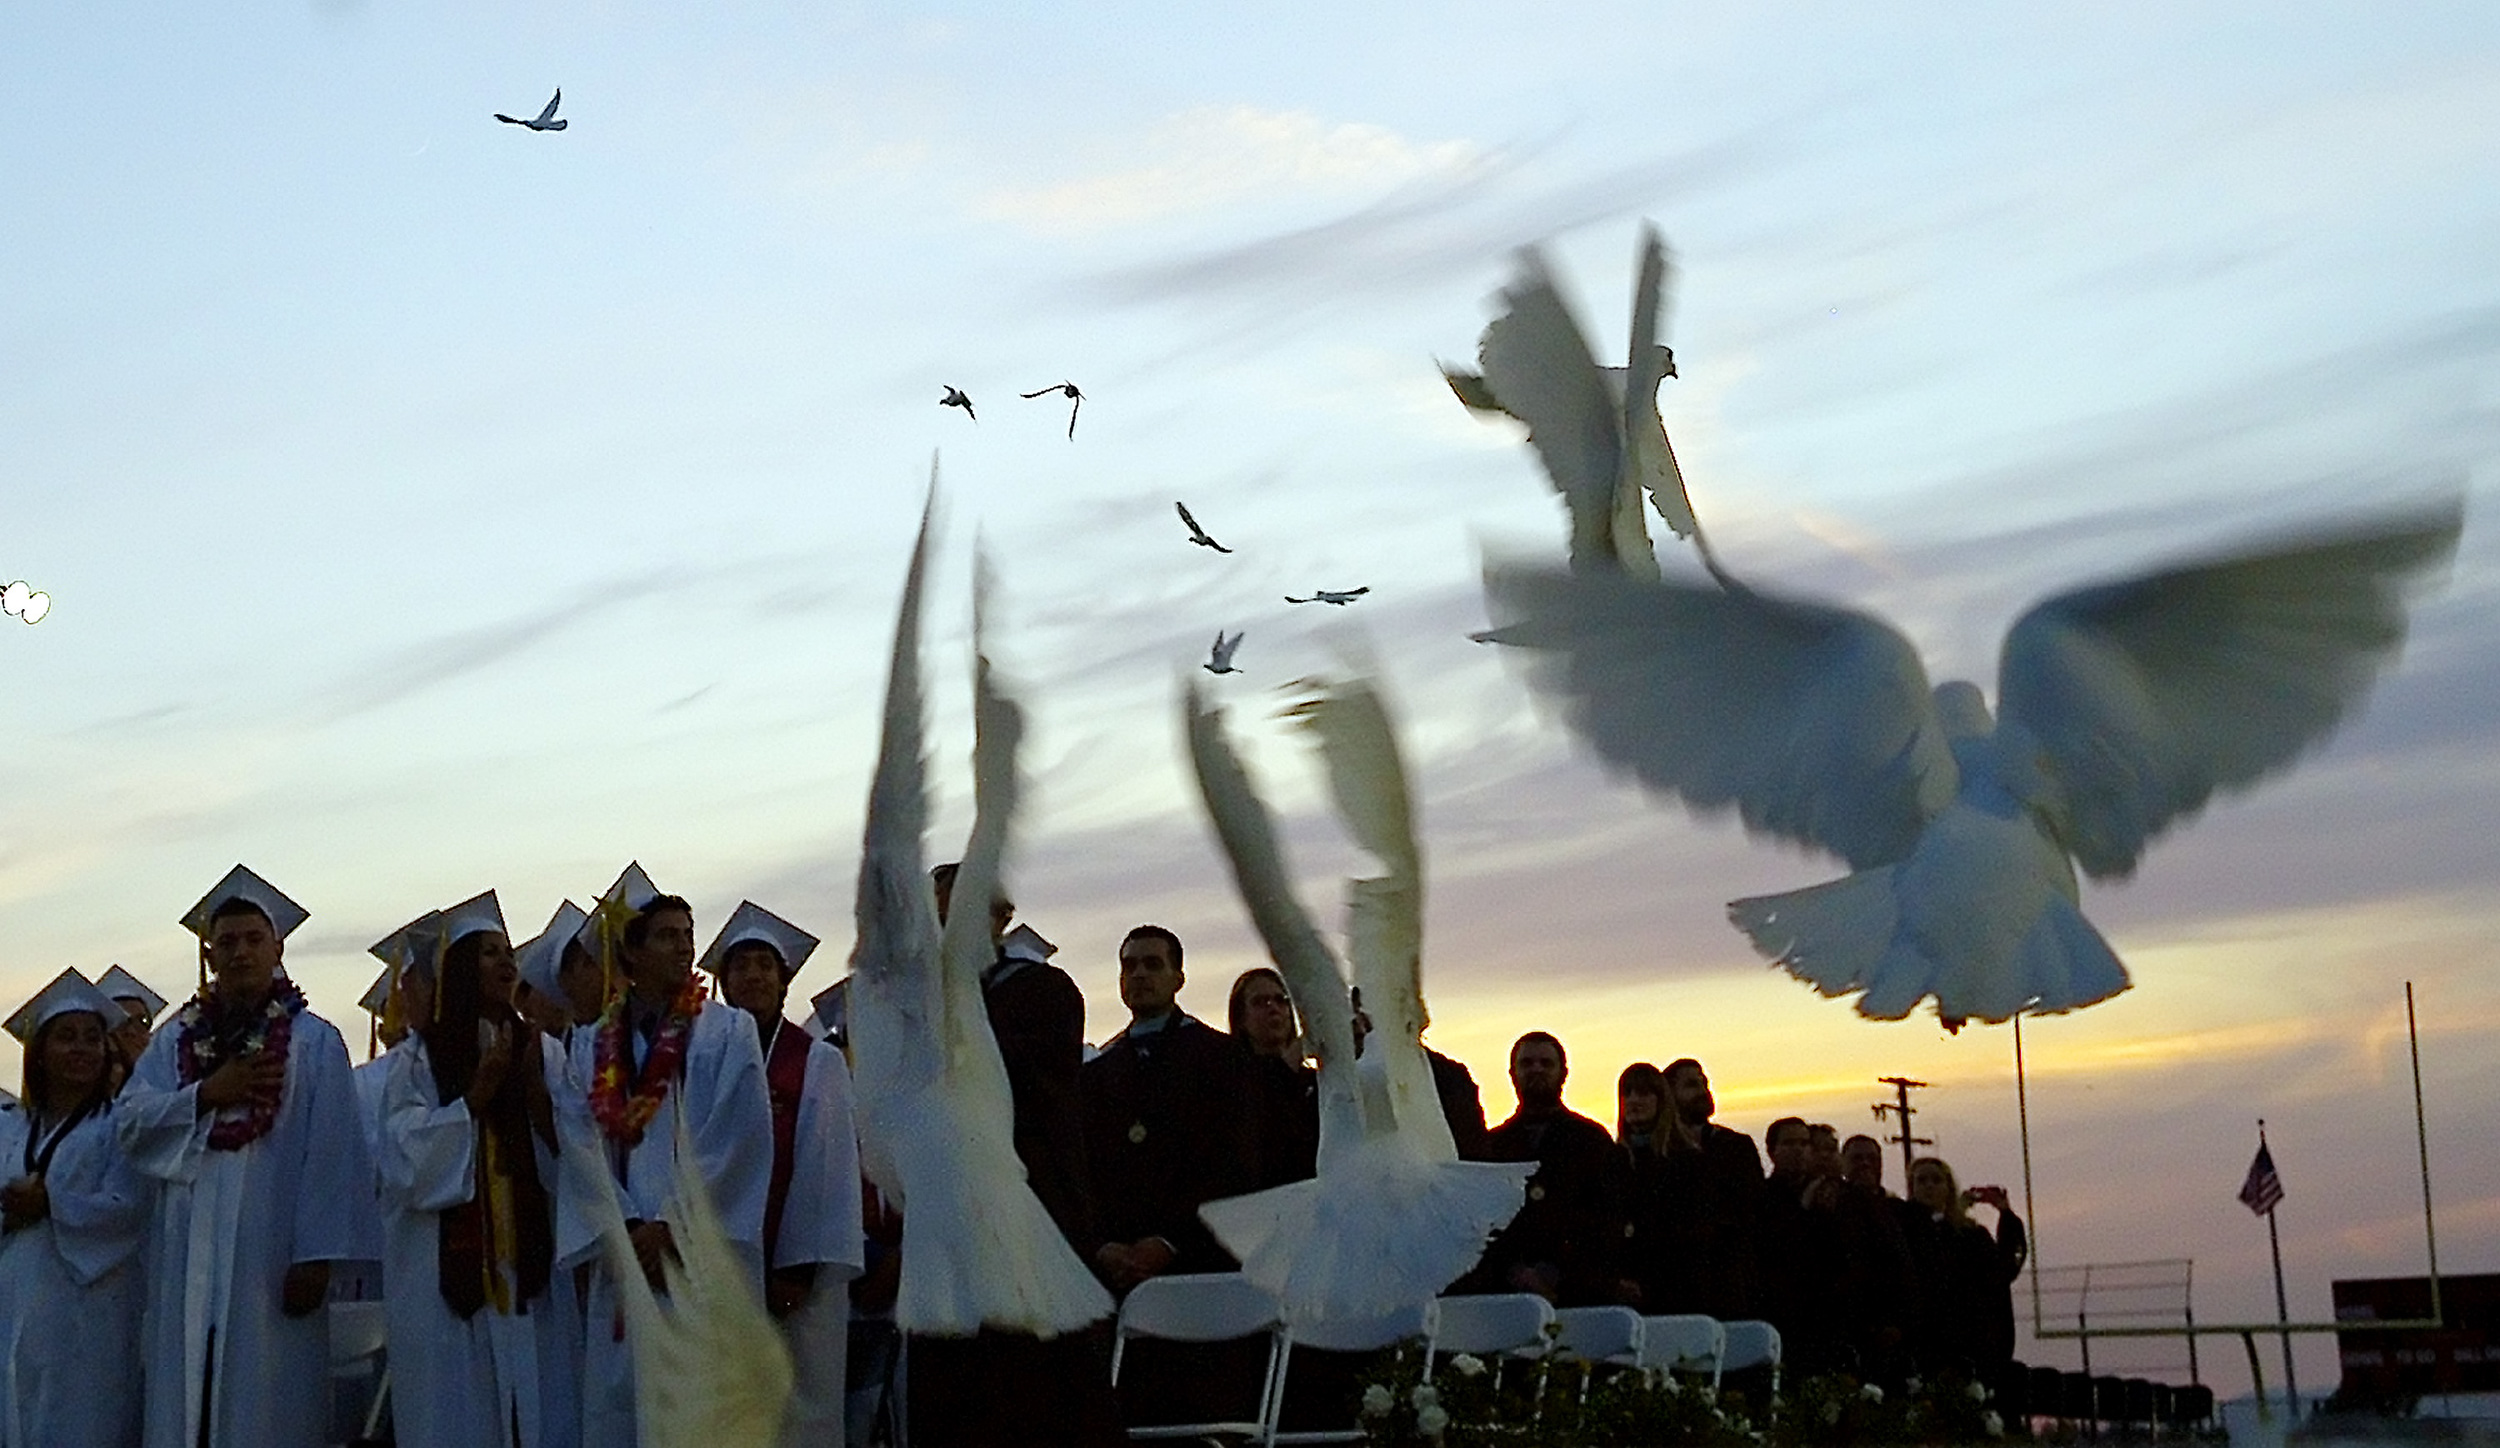 Graduates look on as birds are released during the La Puente High School 100th commencement ceremony at La Puente High School in La Puente, Calif., on Tuesday, May 19, 2015.